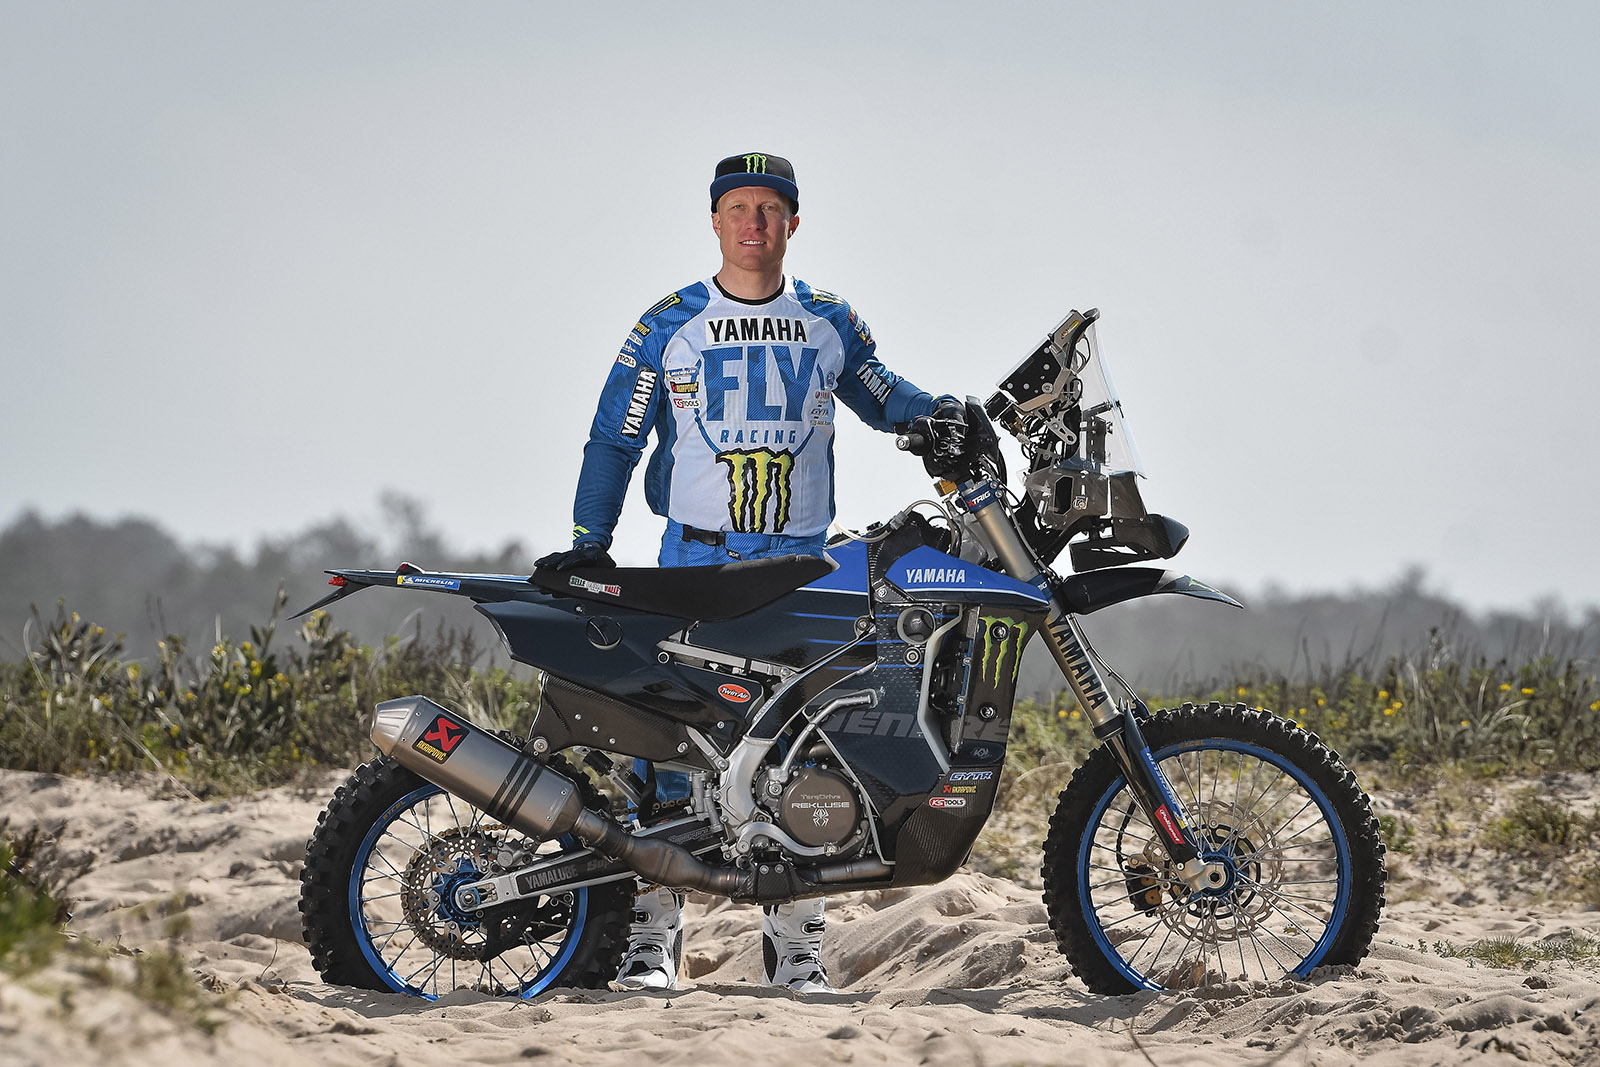 andrew_short_yamaha_rally_2020_static_560